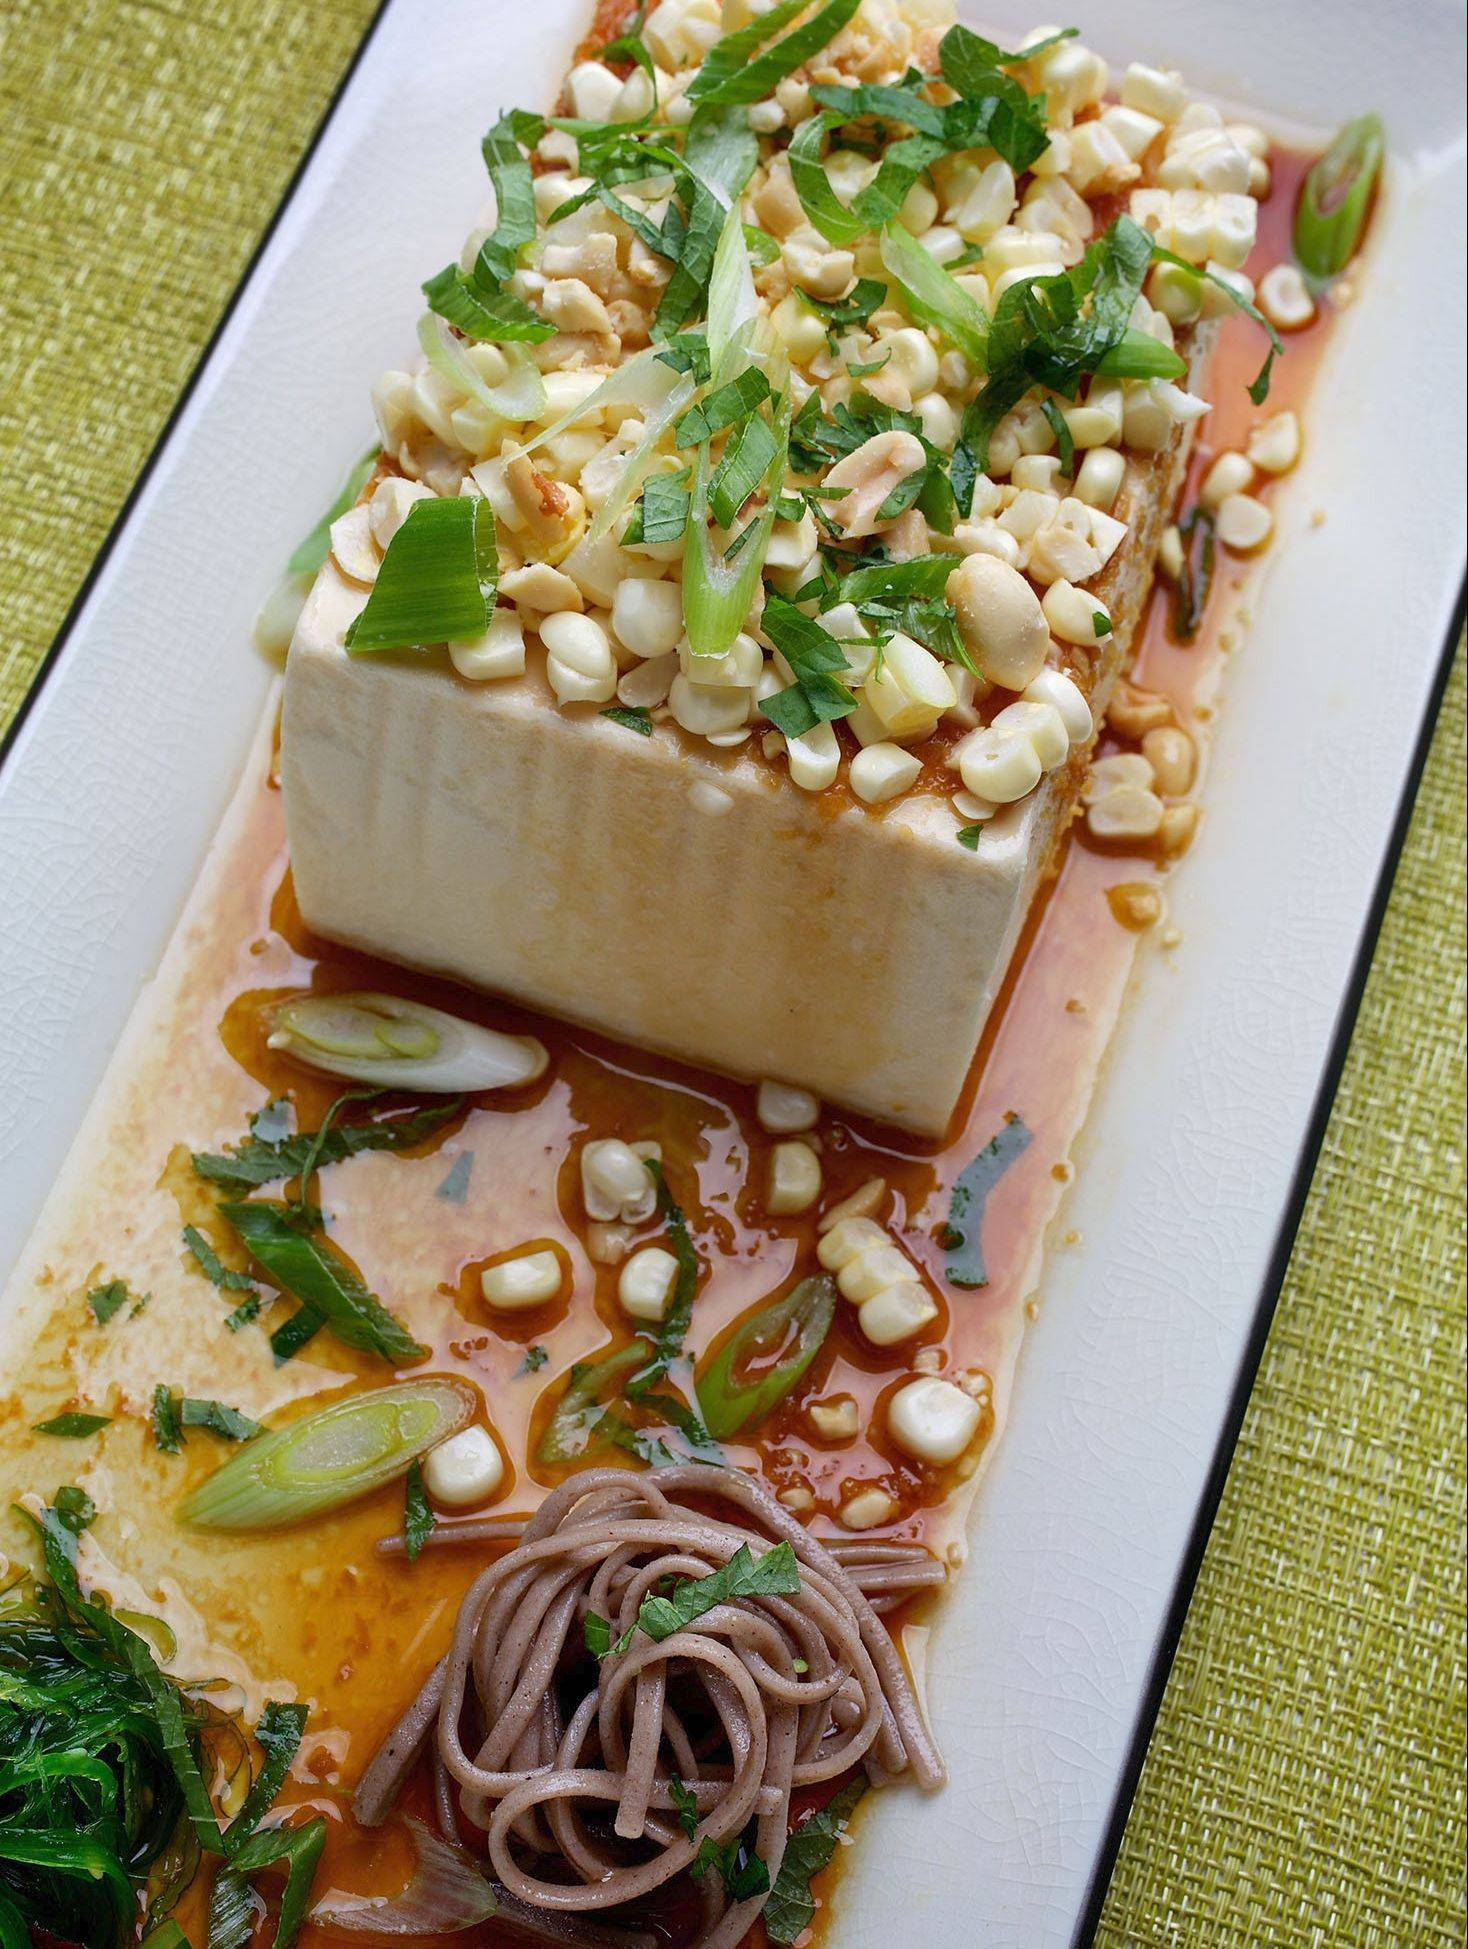 Chilled Tofu With Spicy, Crunchy Topping hits the spot when the temperature spikes.